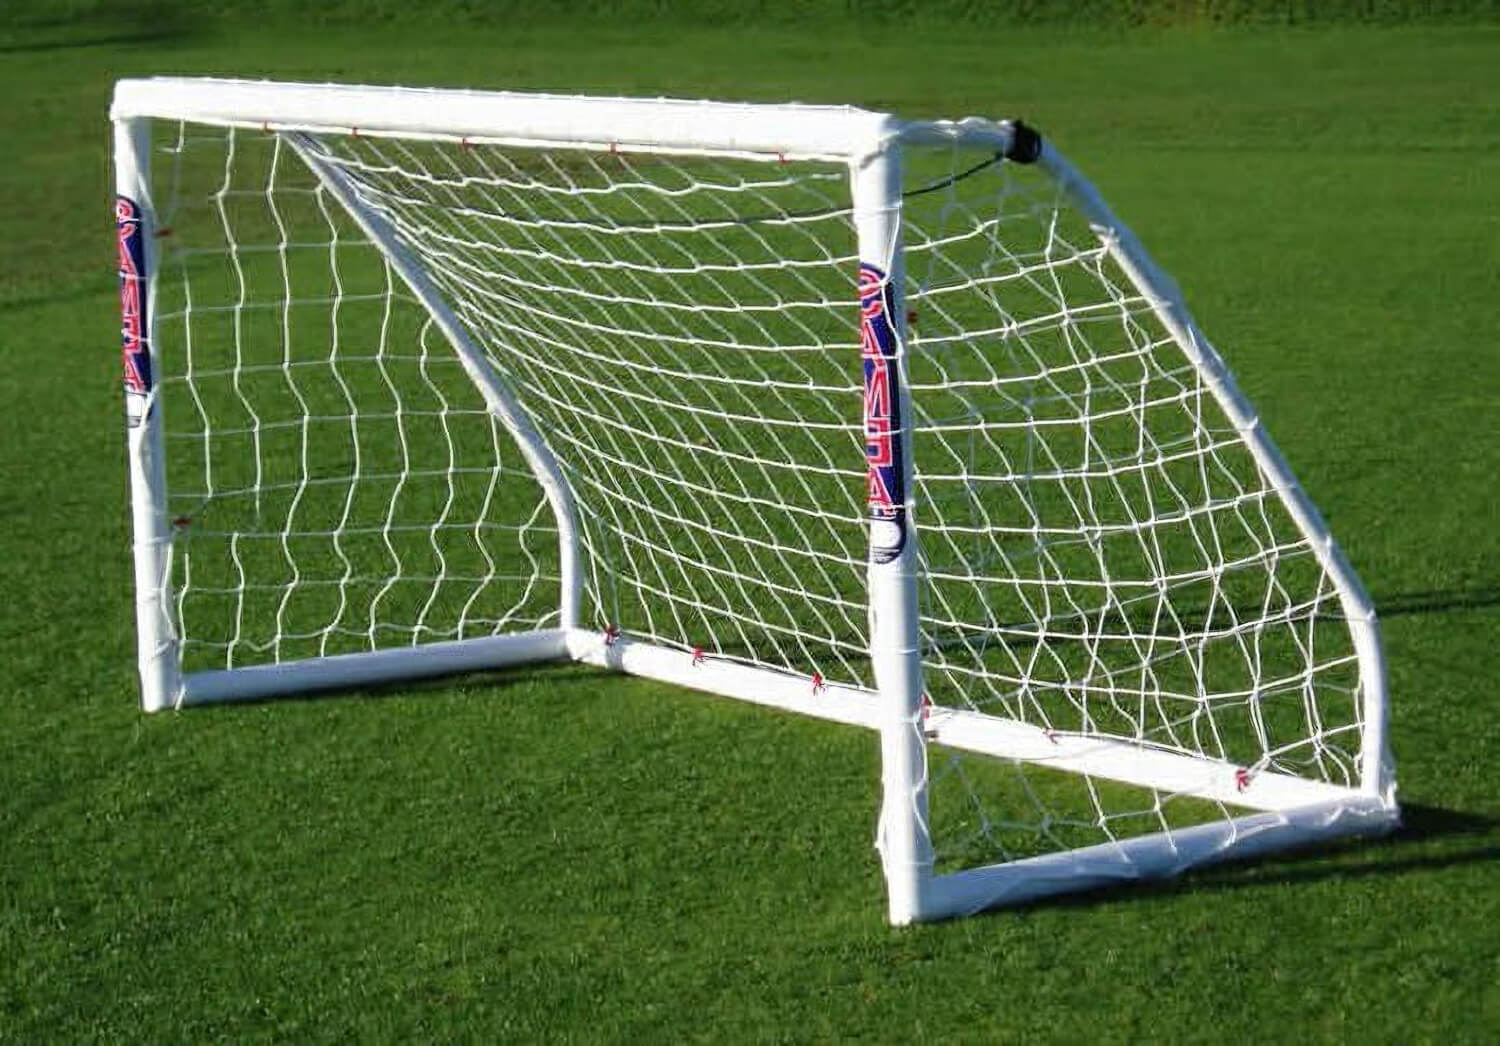 Samba 8 Foot X 4 Foot Match Goal With Upvc Corners G04match